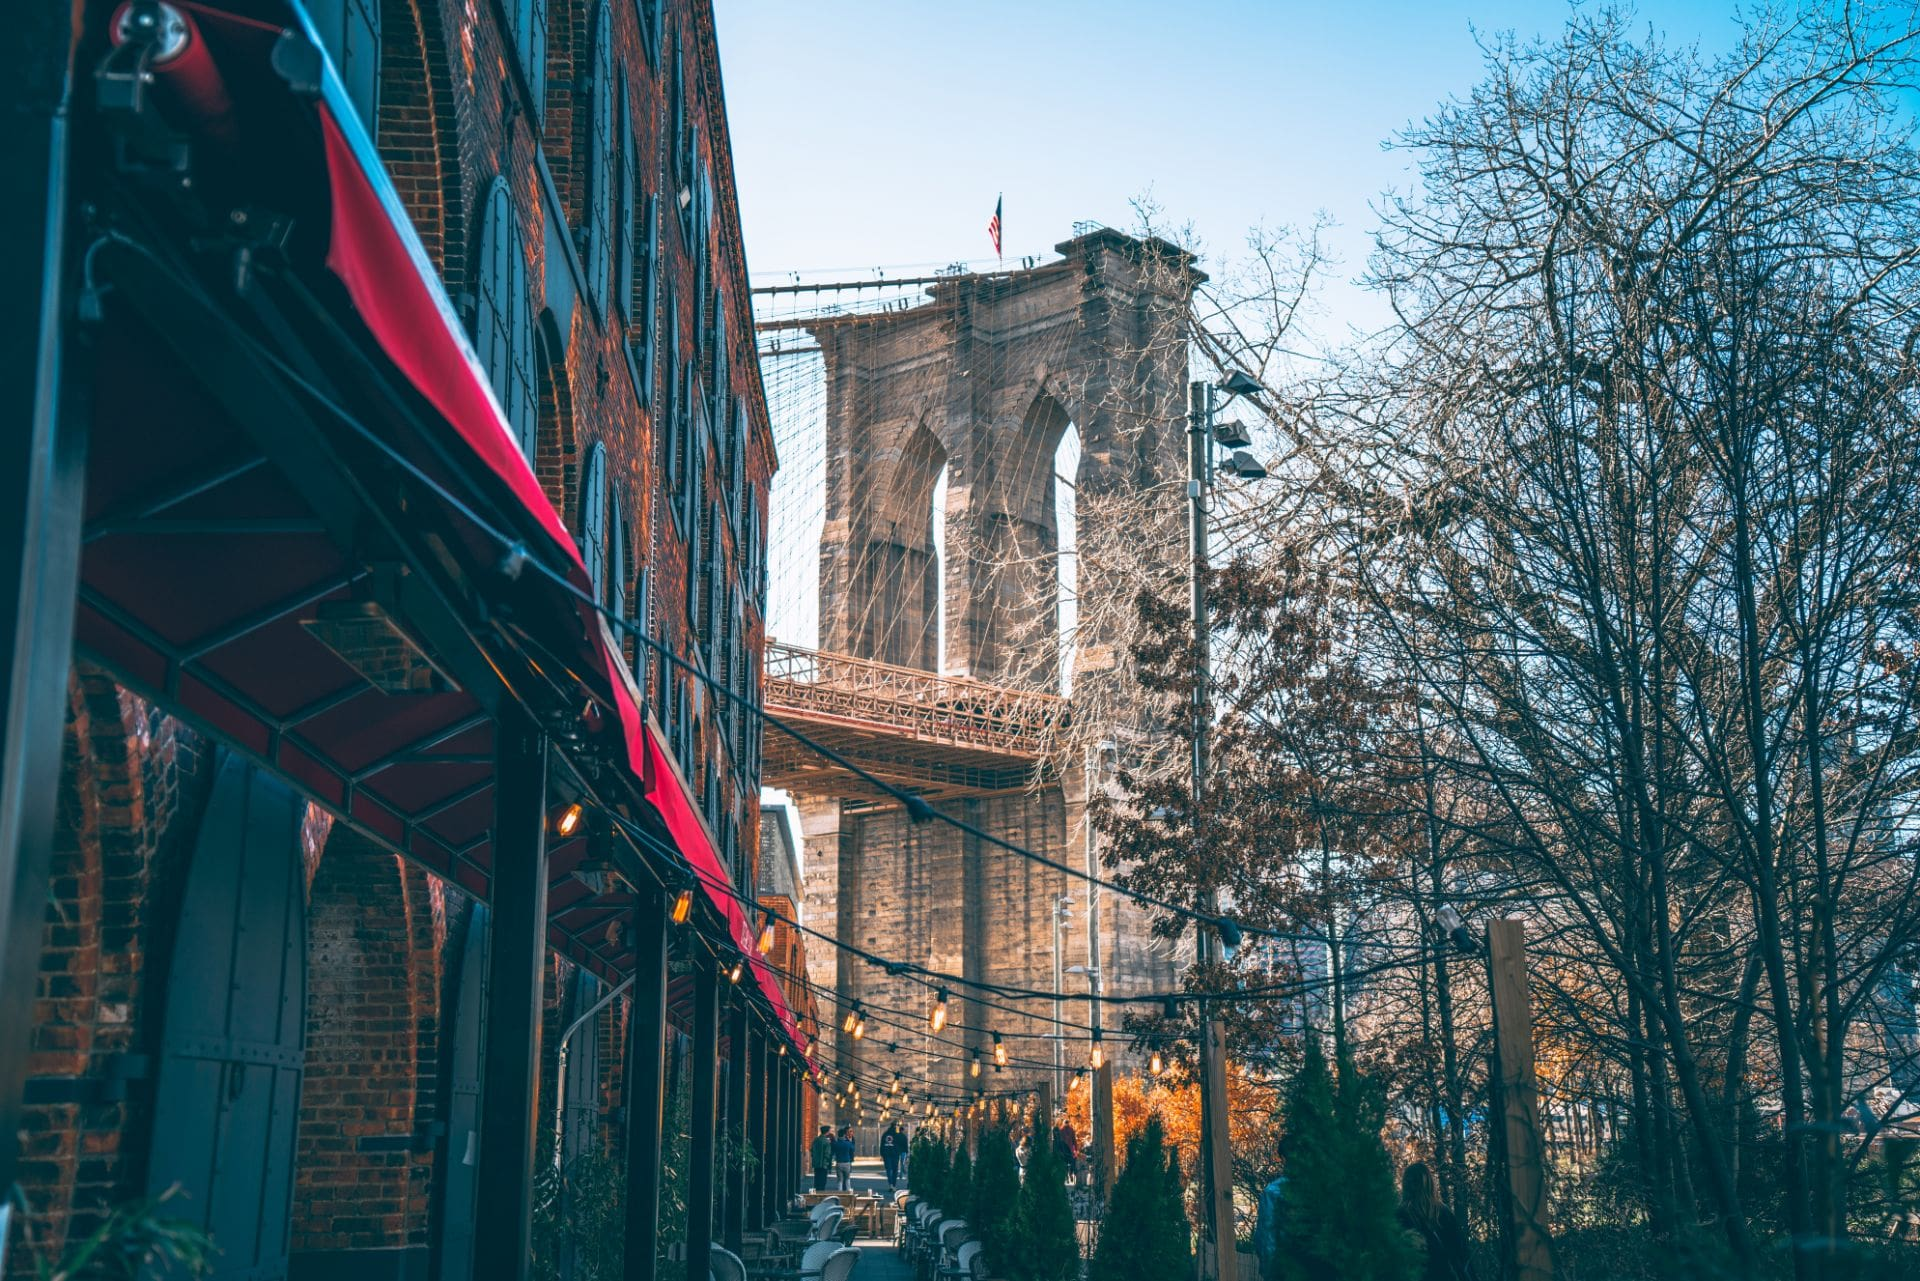 restaurants-with-fairy-lights-in-front-of-brooklyn-bridge-in-new-york-in-4-days